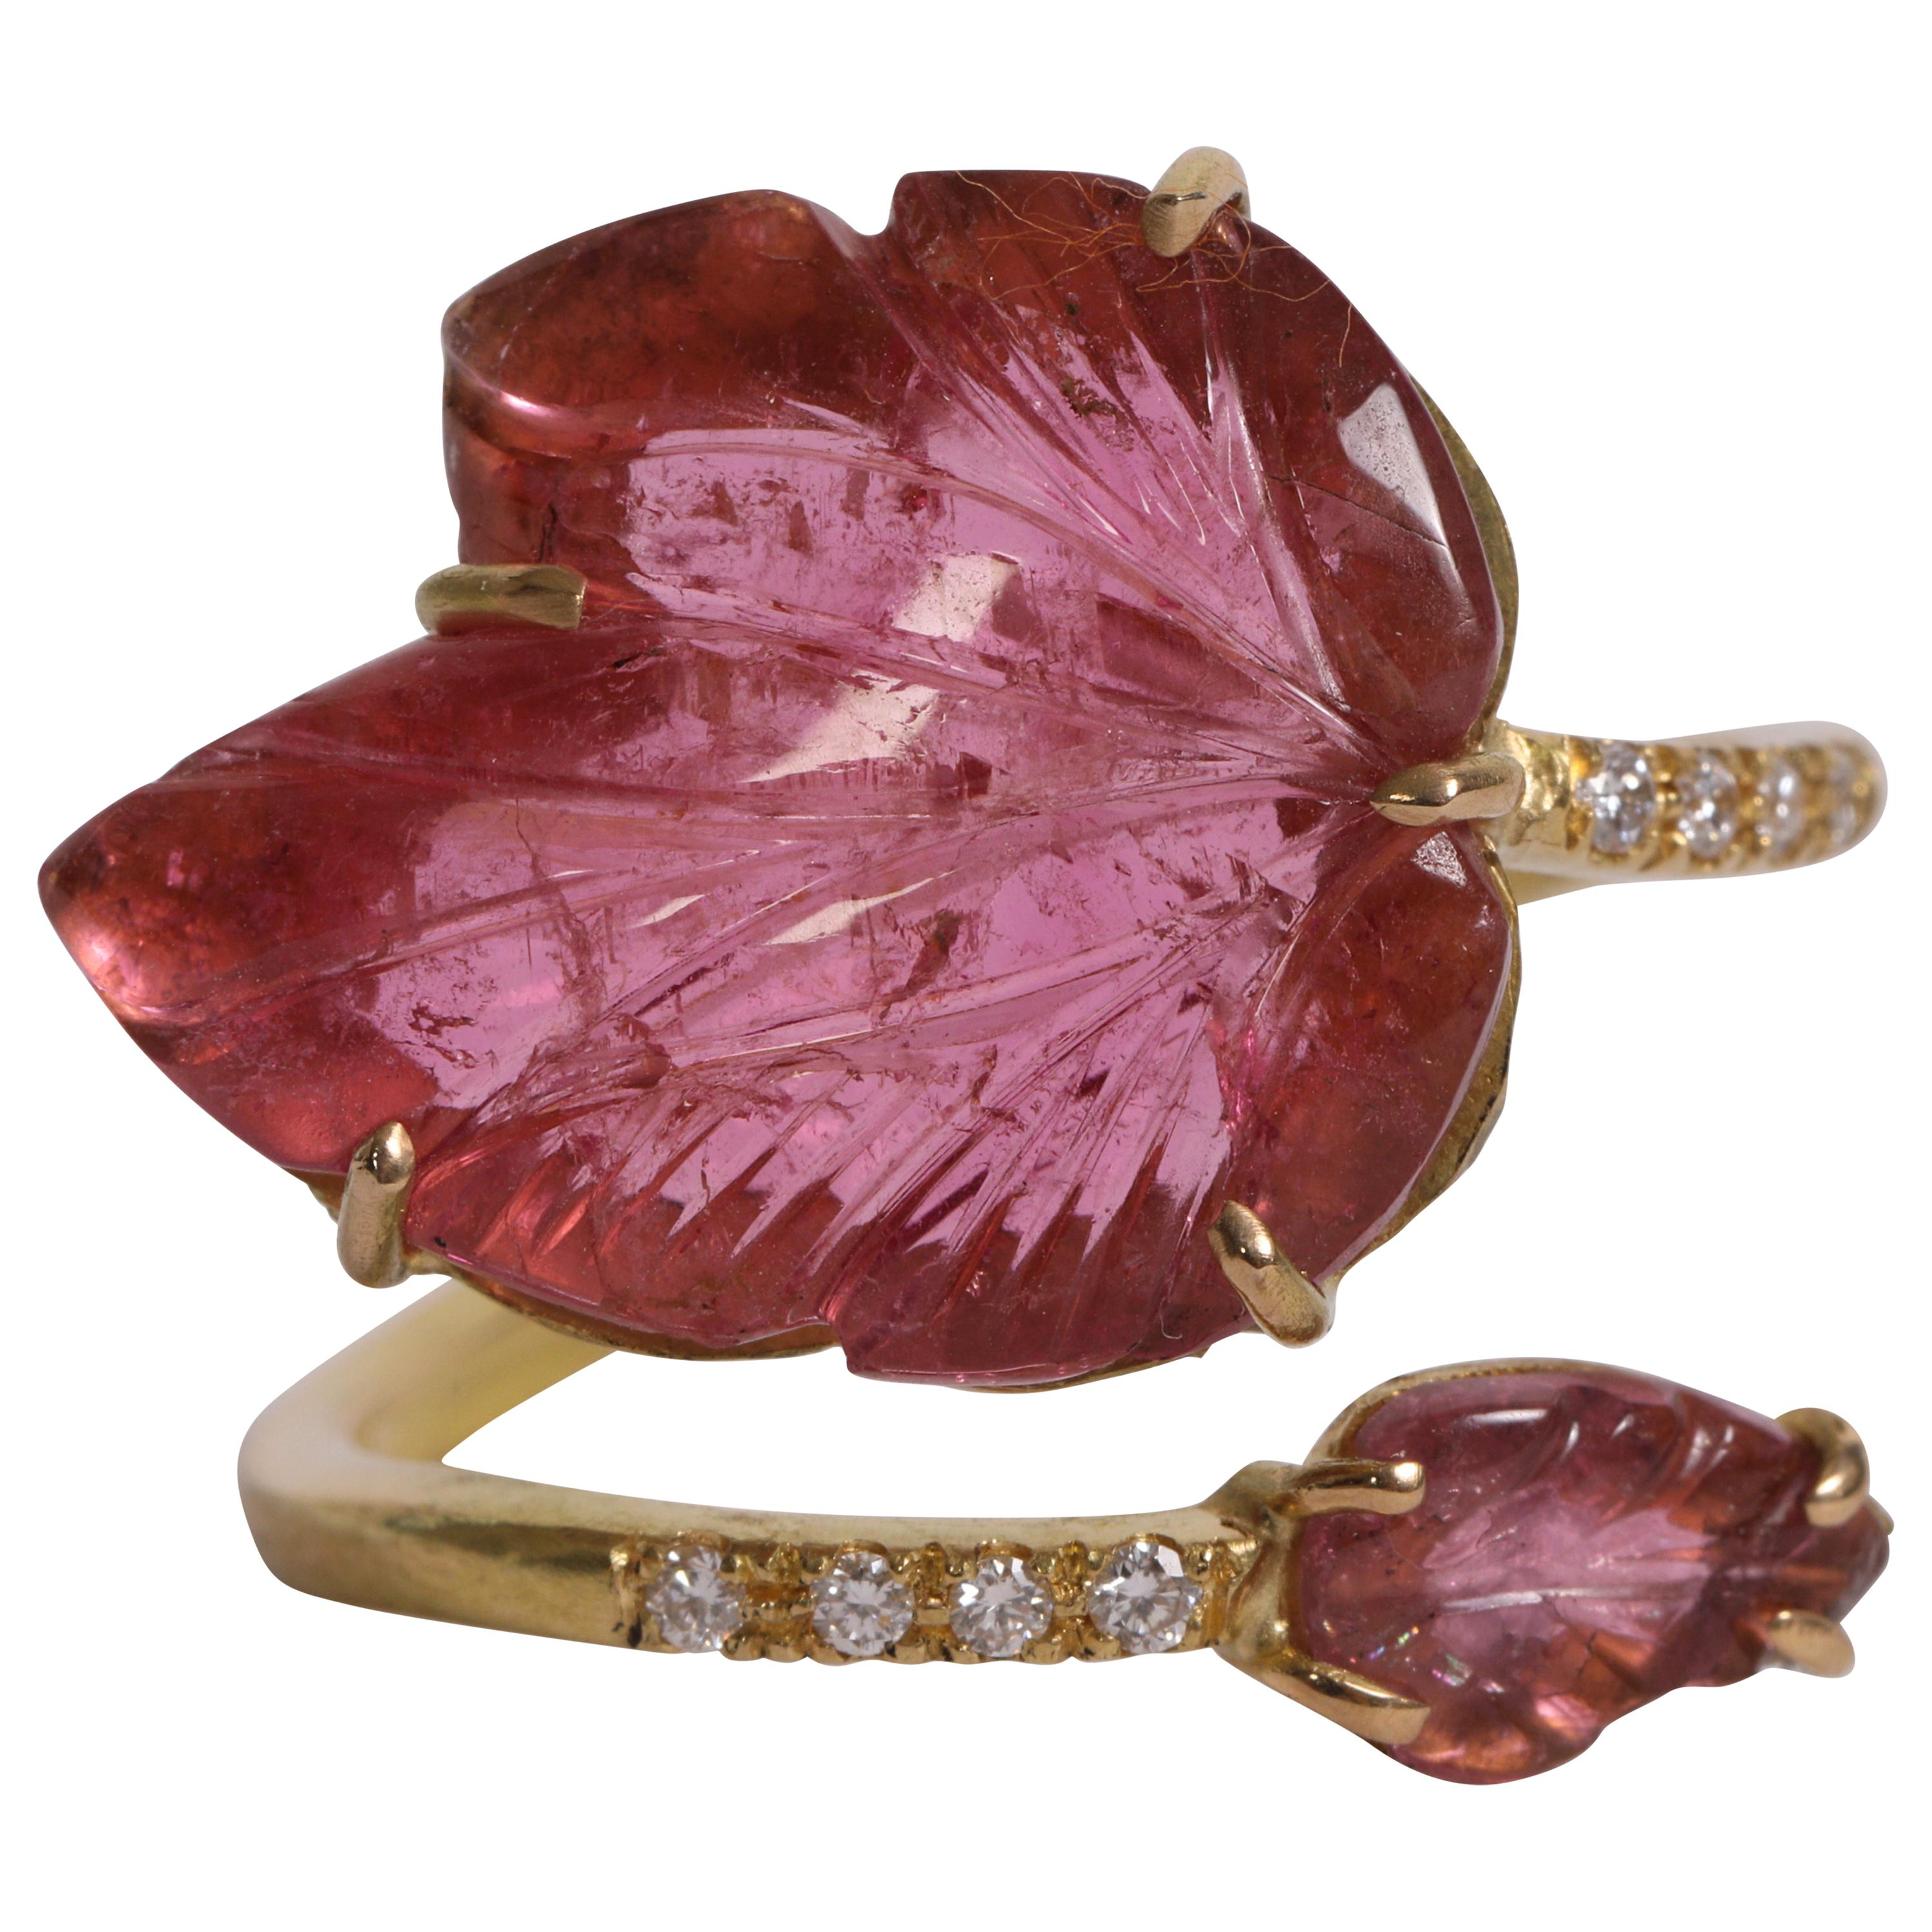 18K Yellow Gold Ring Set With Two Engraved Pink Tourmalines and Diamonds.